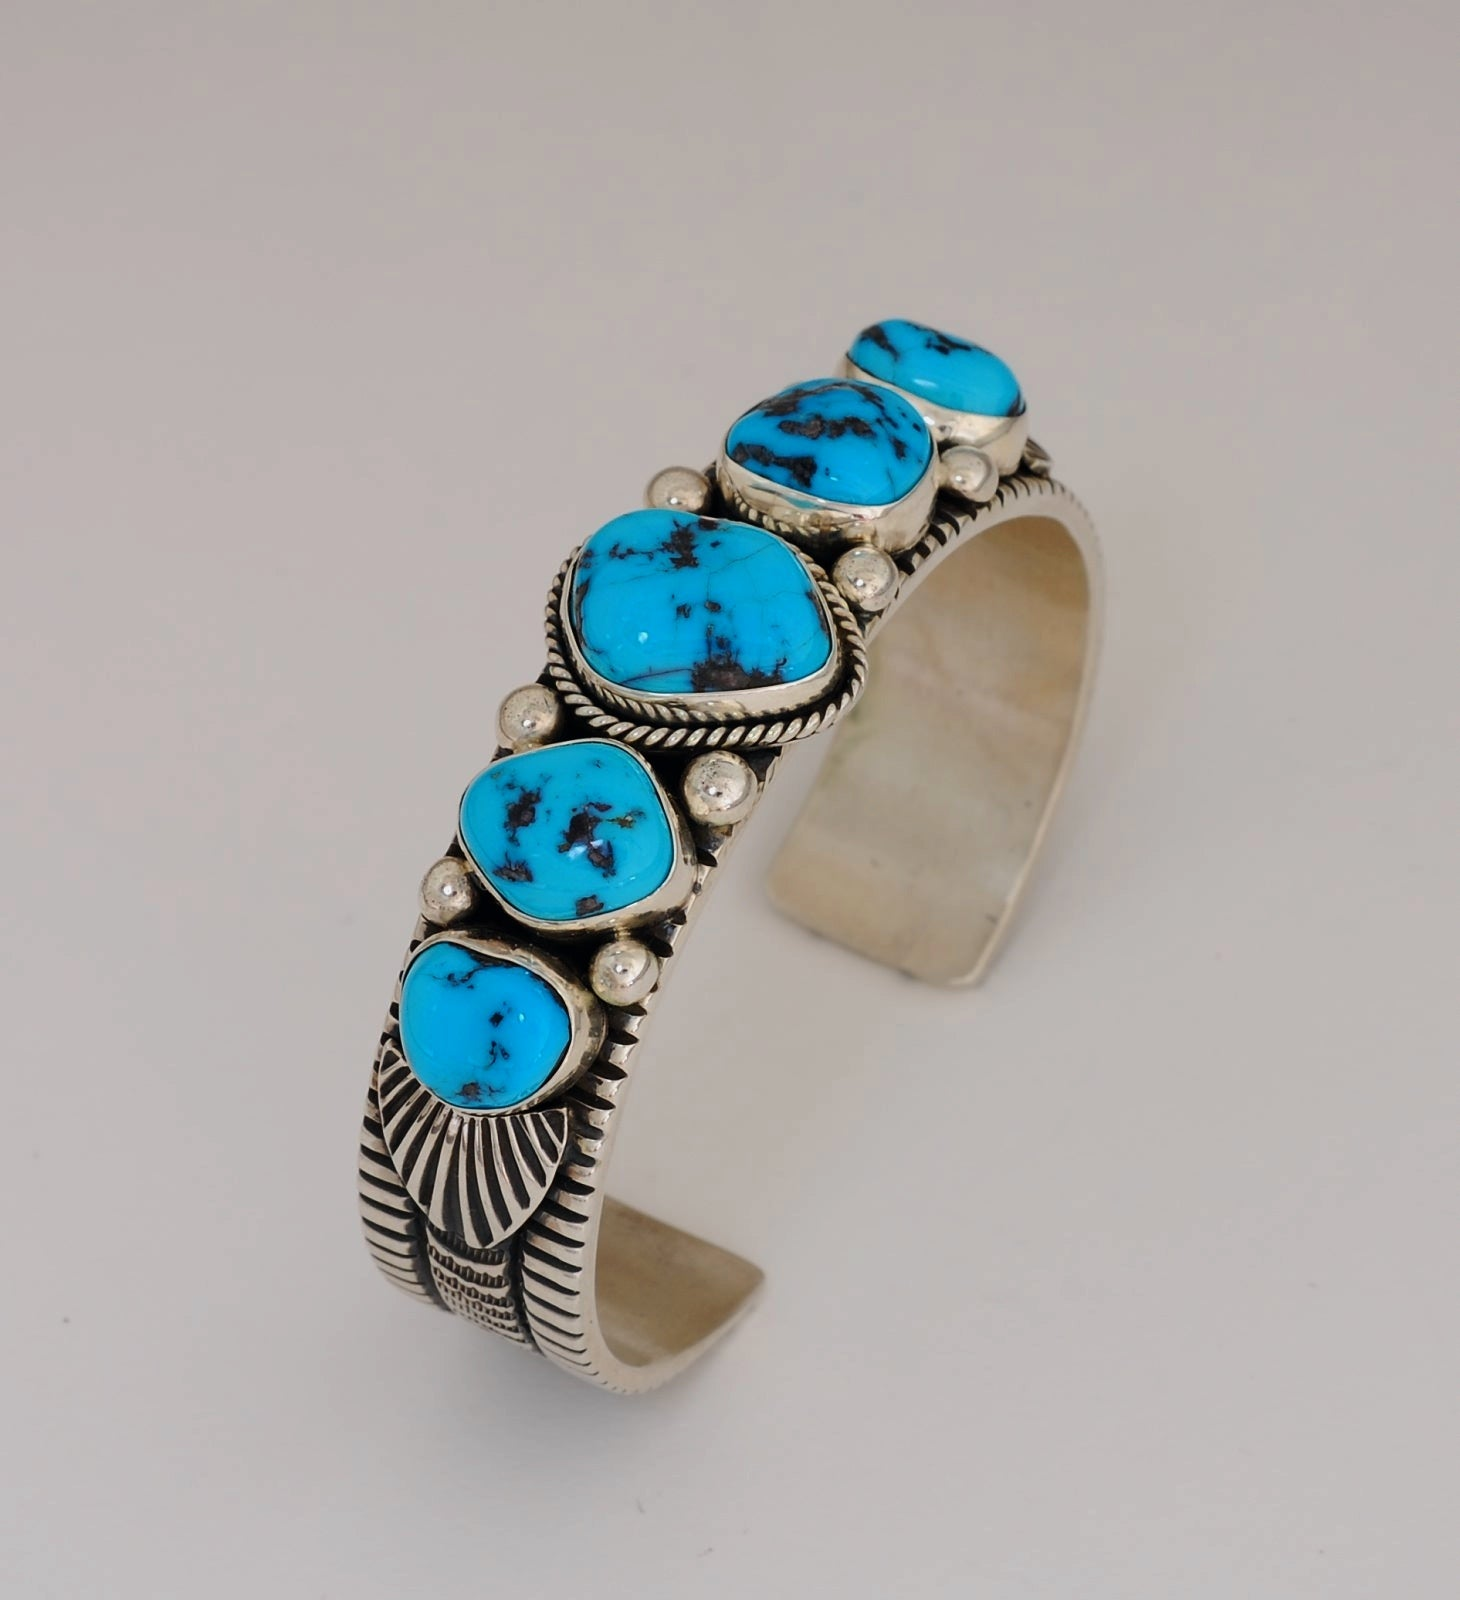 Kingman Turquoise Nugget Bracelet by Guy Hoskie